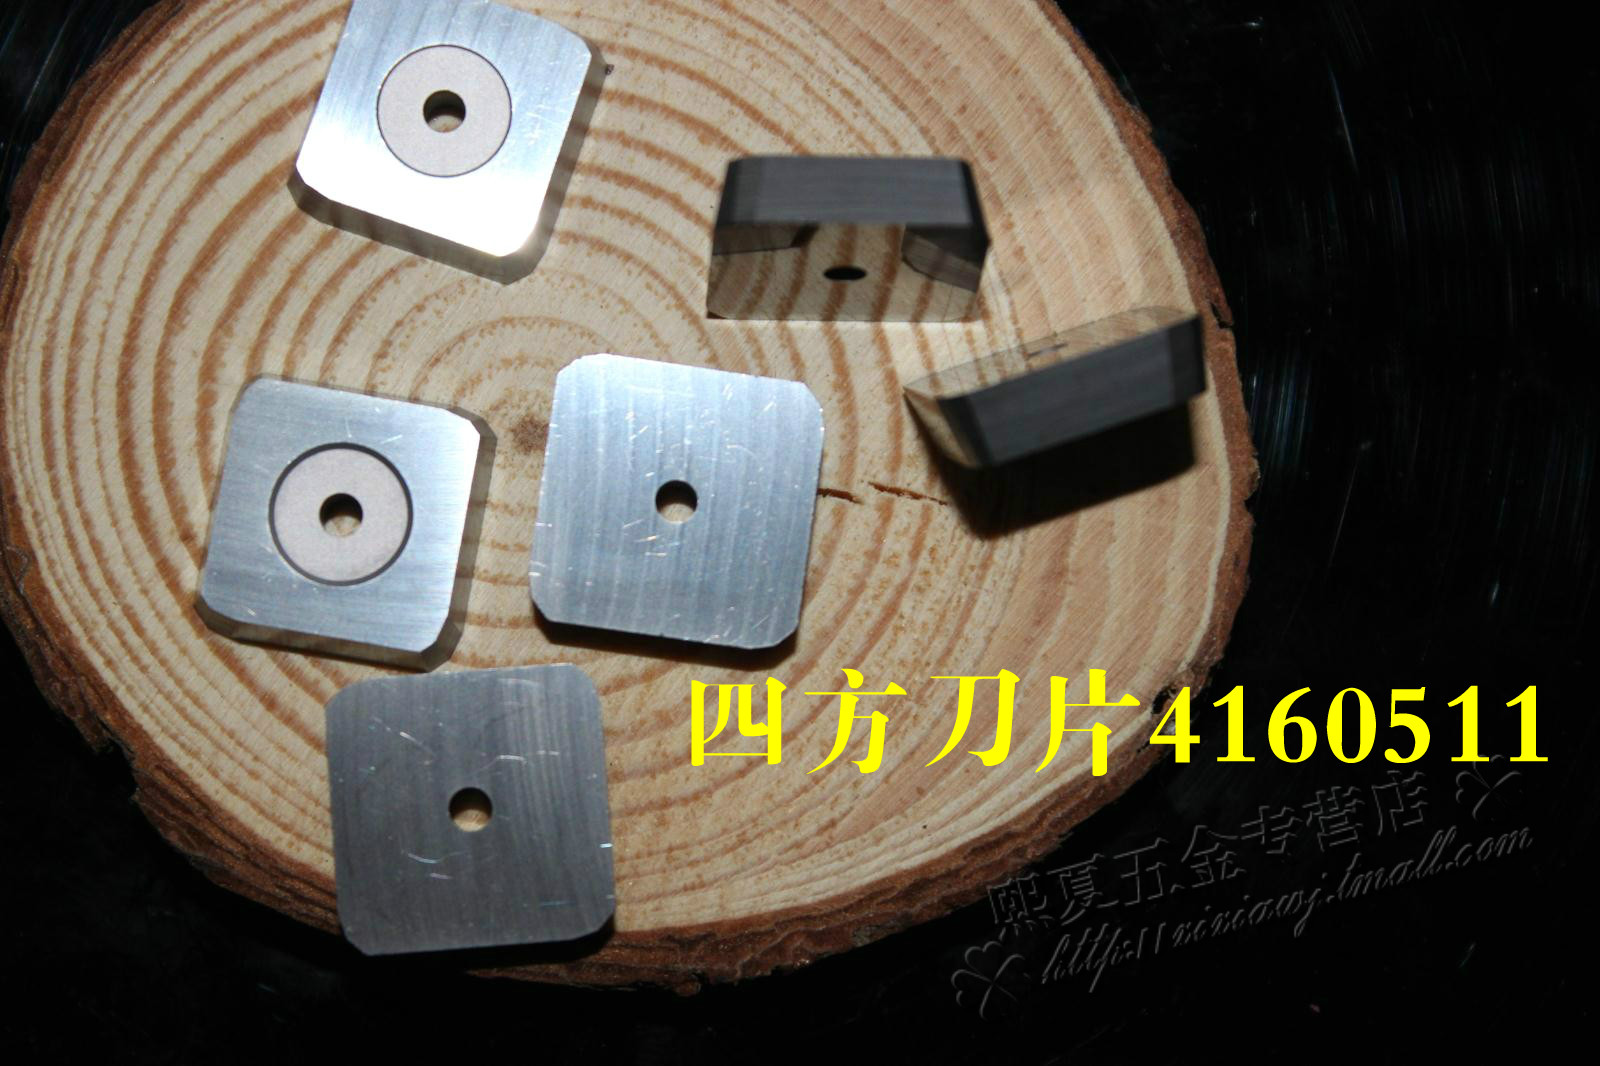 Indexable milling insert yt15 carbide milling inserts quartet hole 4160511 face milling inserts